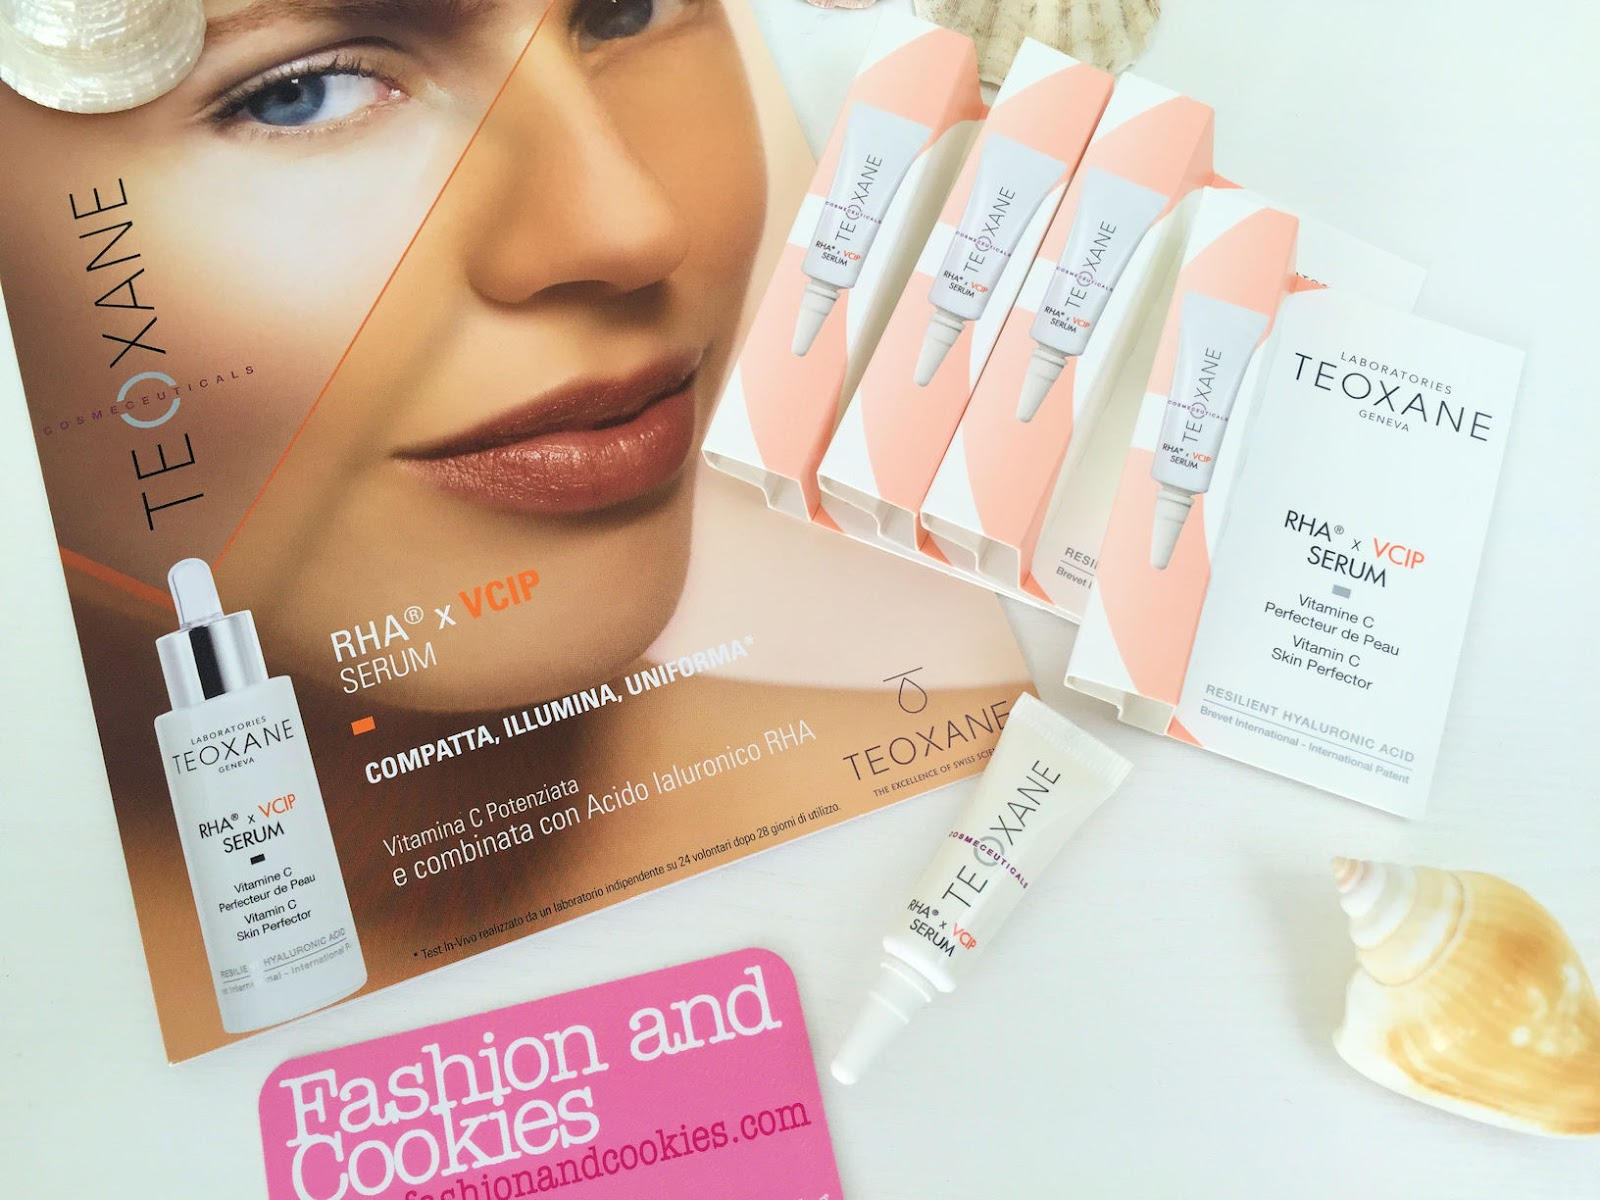 Teoxane RHA x VCIP Serum on Fashion and Cookies beauty blog, beauty blogger